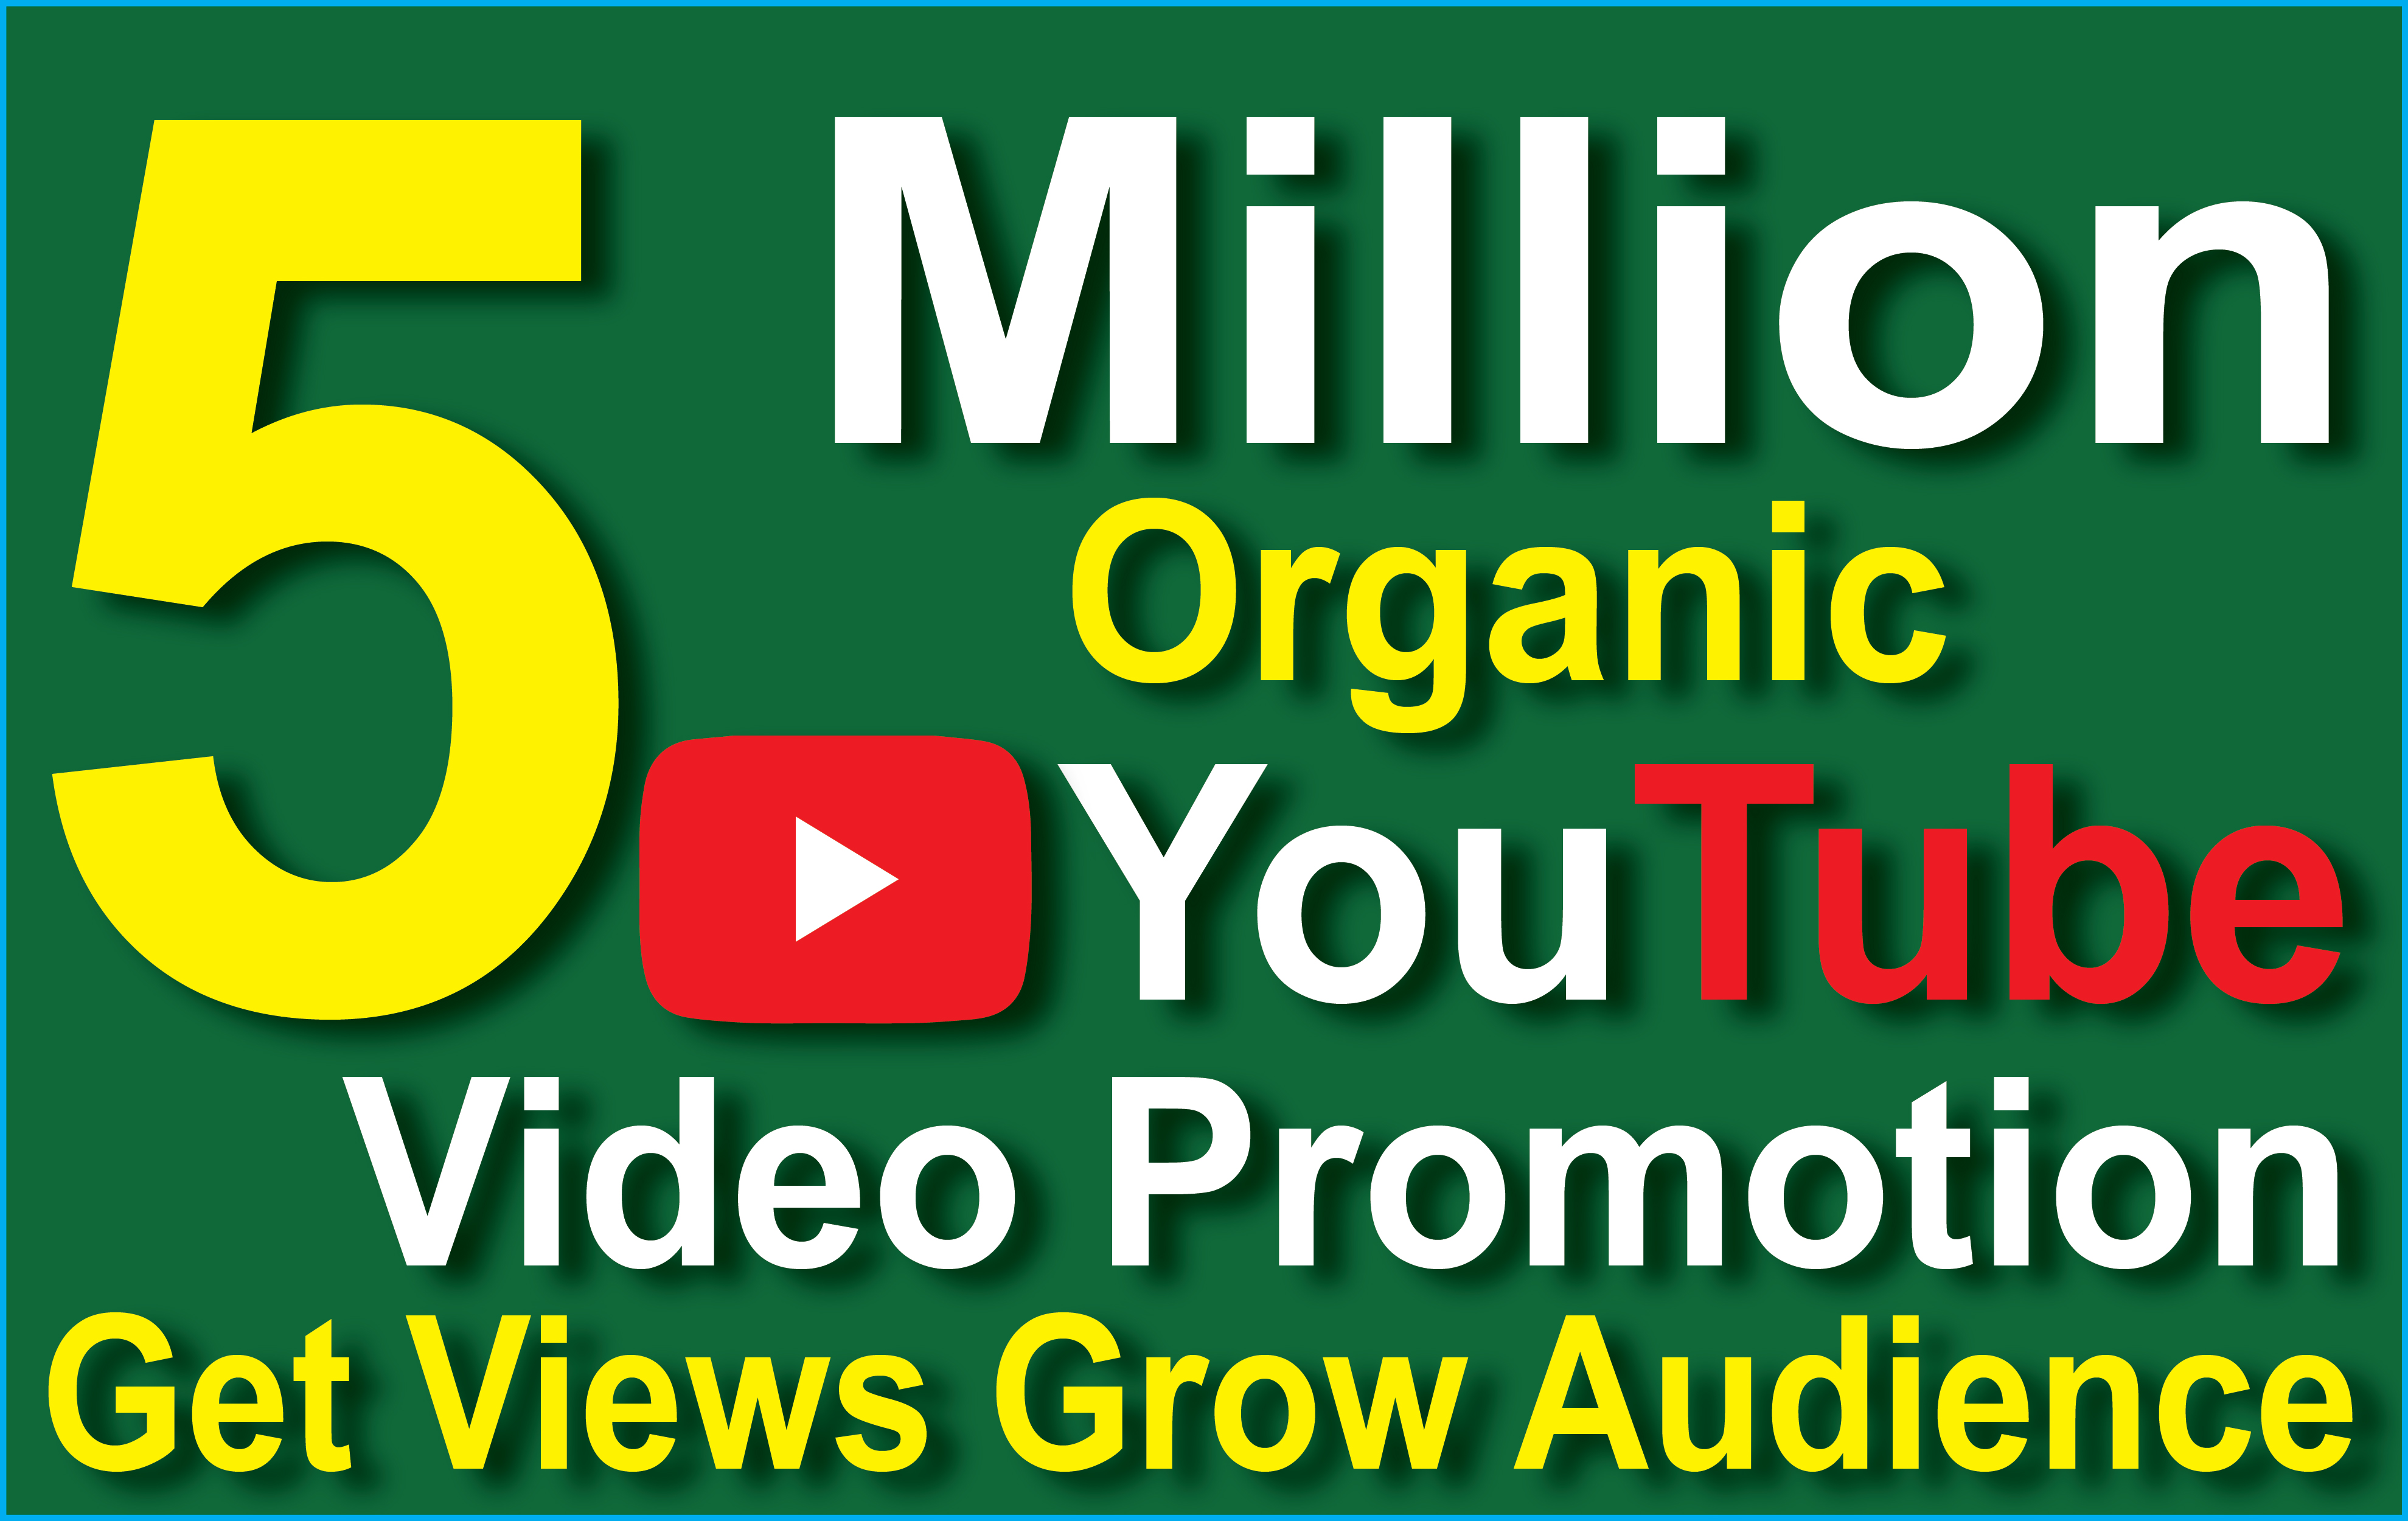 5 Million Super fast organic YouTube video promotion with GSA SER high quality seo backlinks